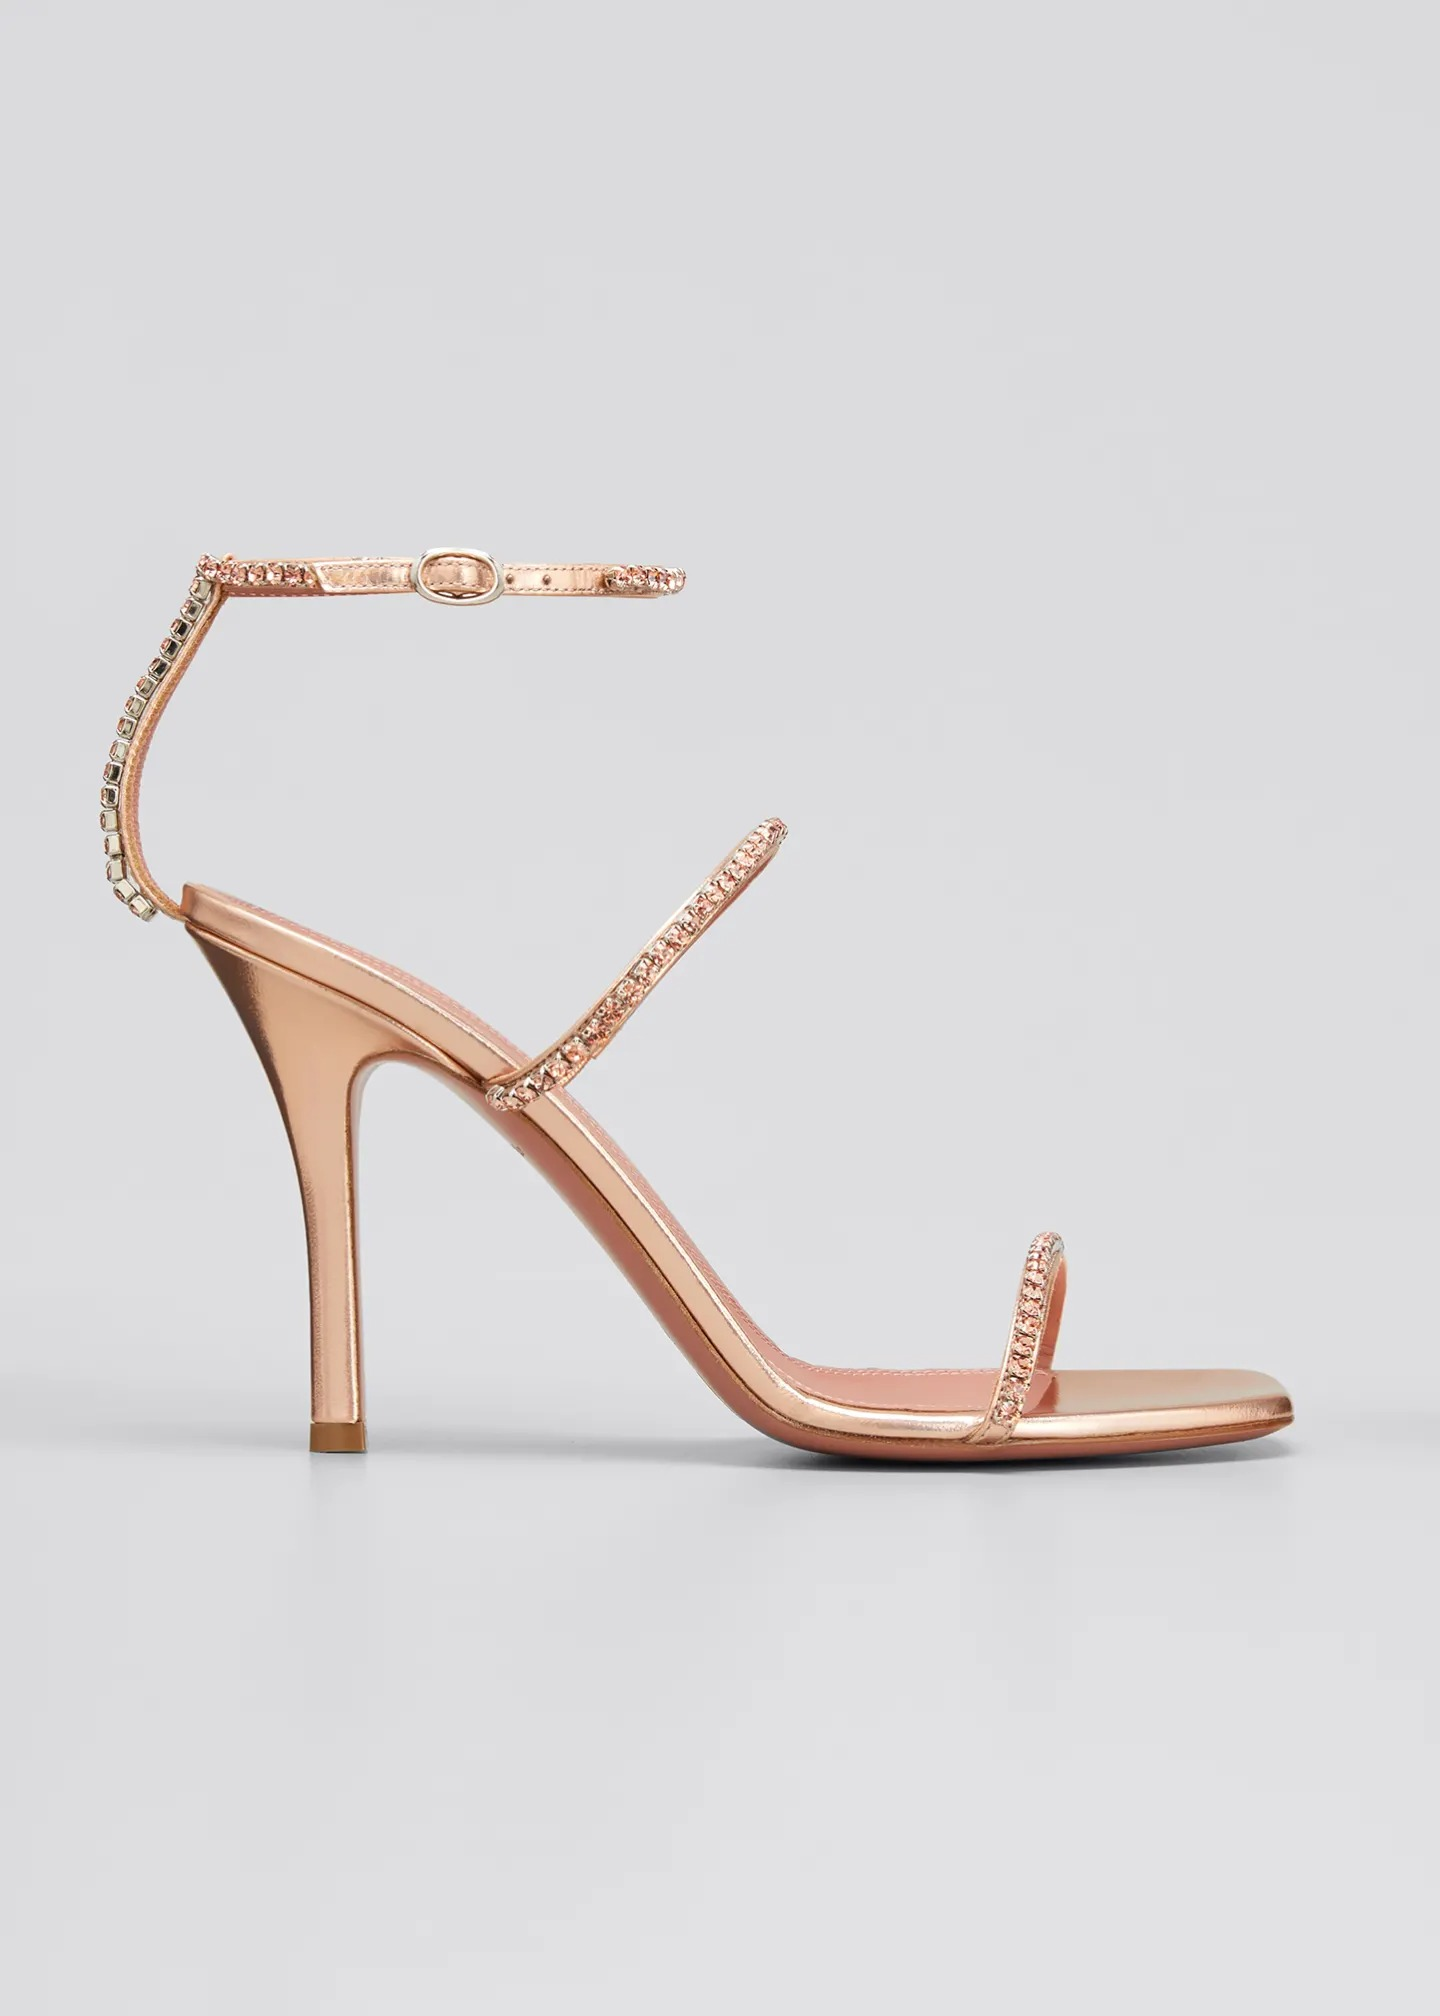 rose gold studded Amina Muaddi wedding heels with delicate ankle straps